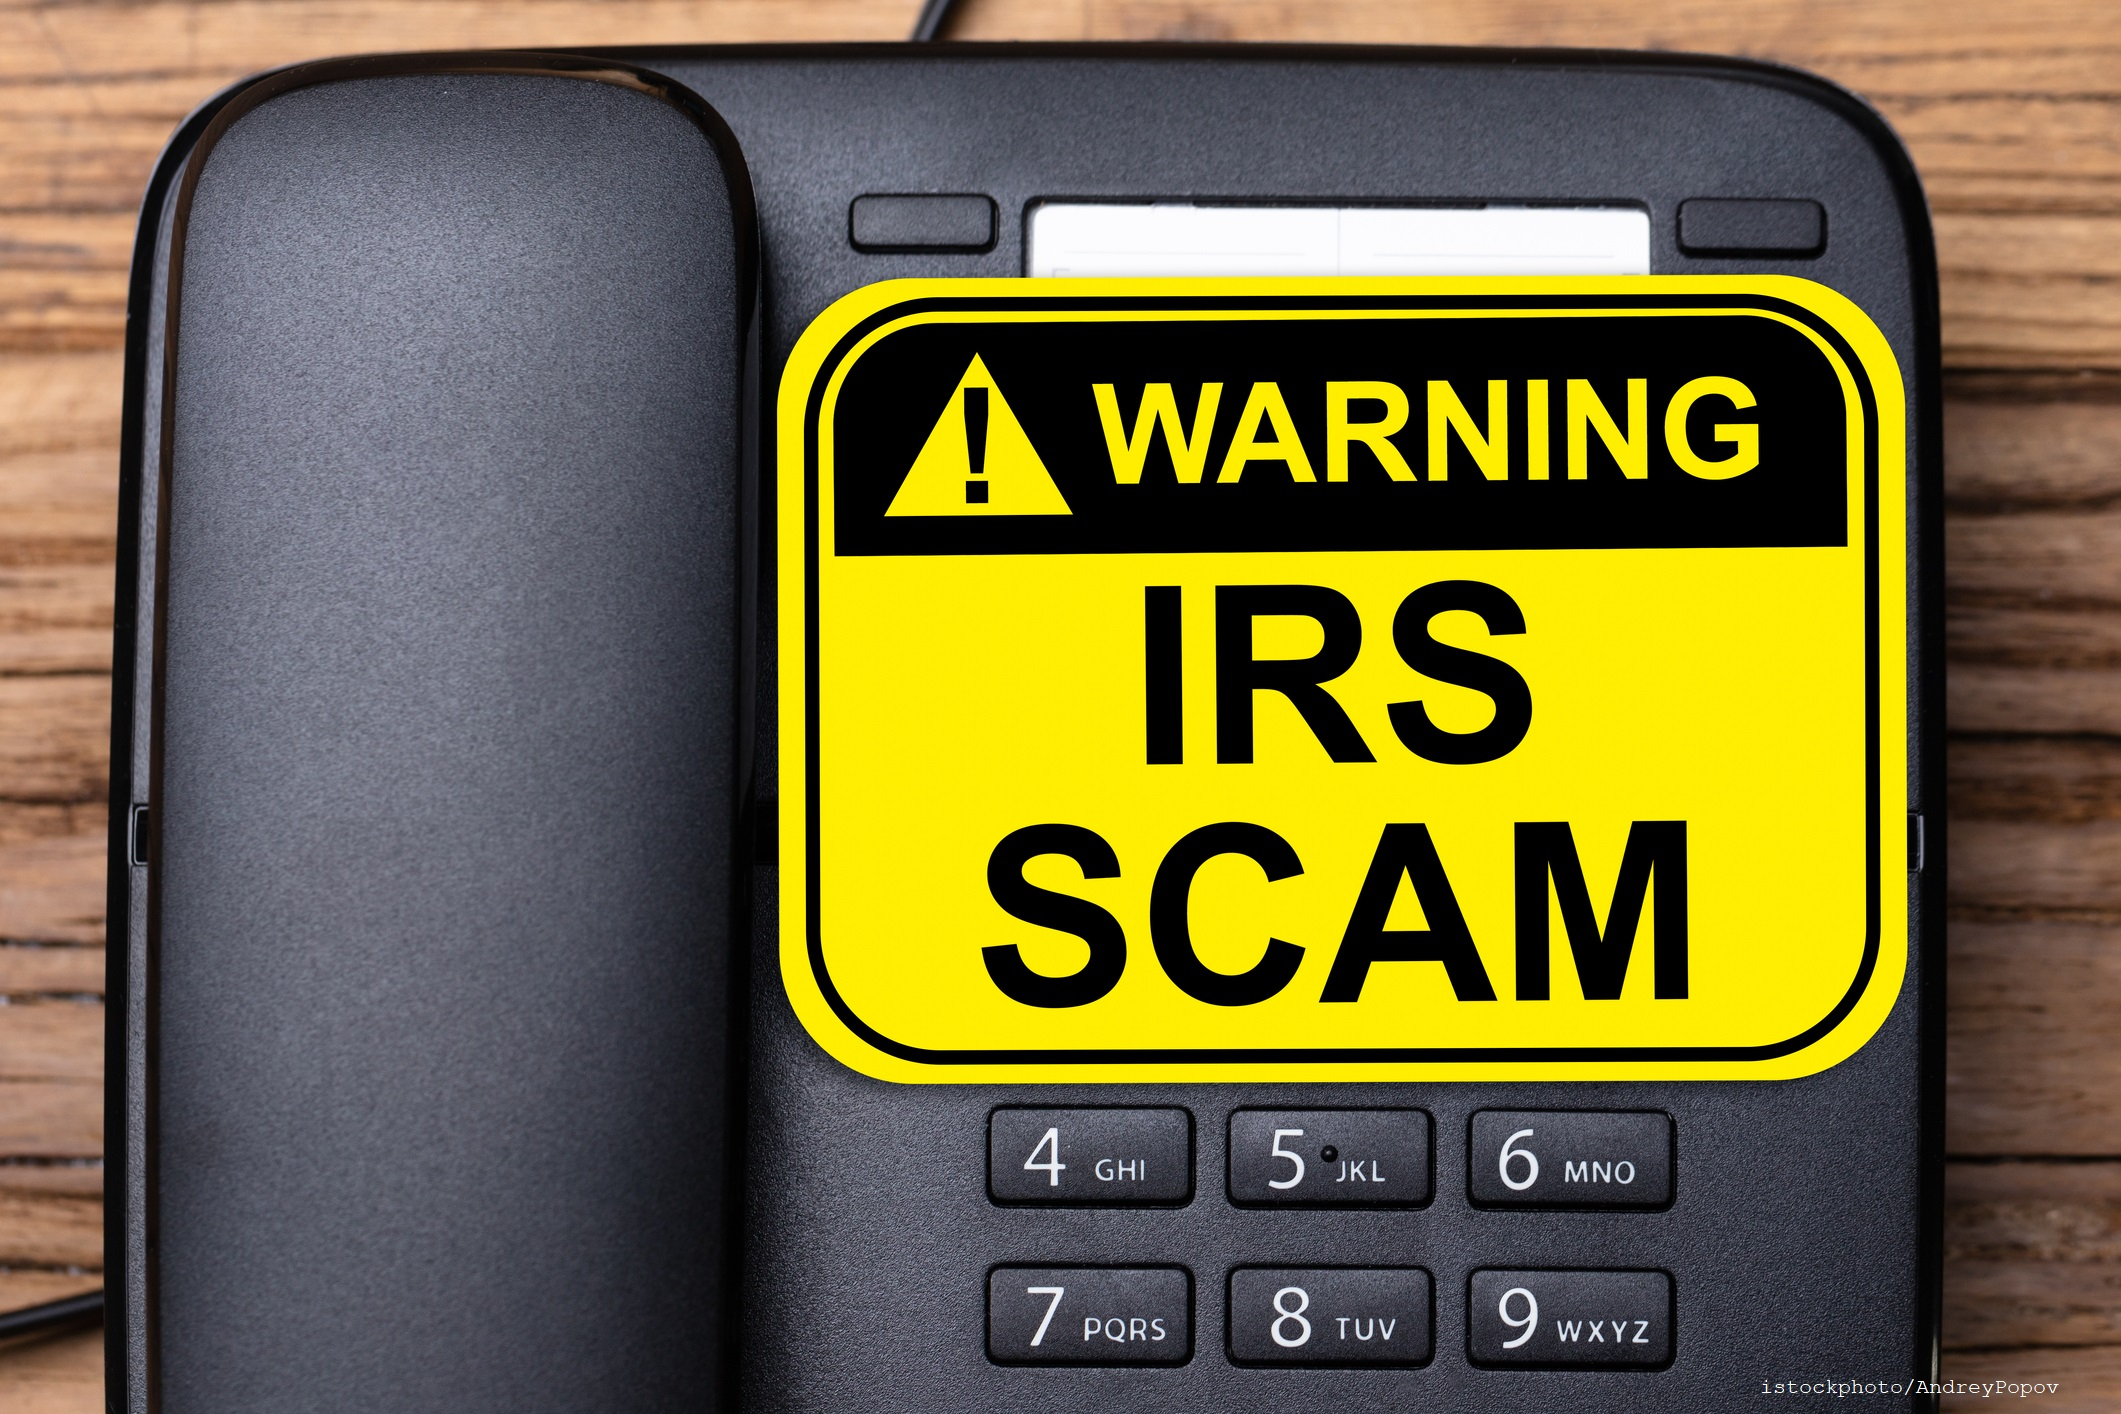 IRS Scam Warning Sign On Landline Phone